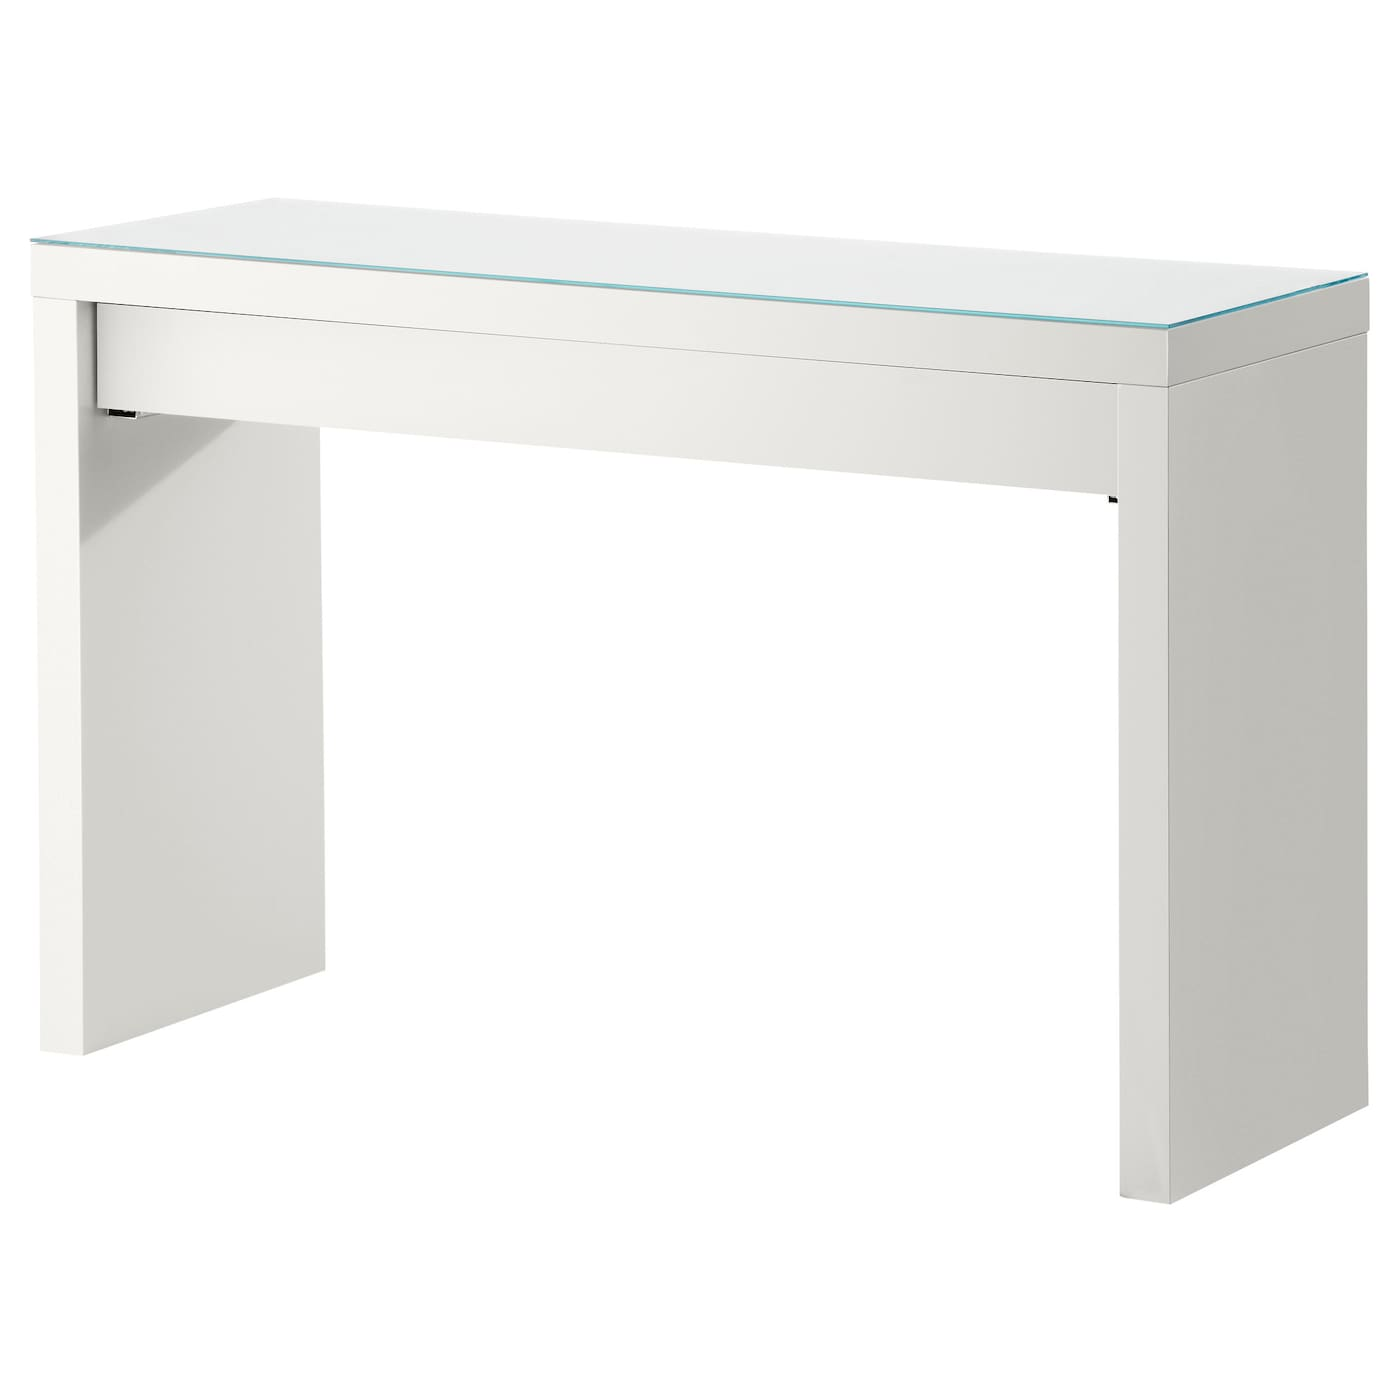 Malm dressing table white 120x41 cm ikea - Table reglable en hauteur ikea ...